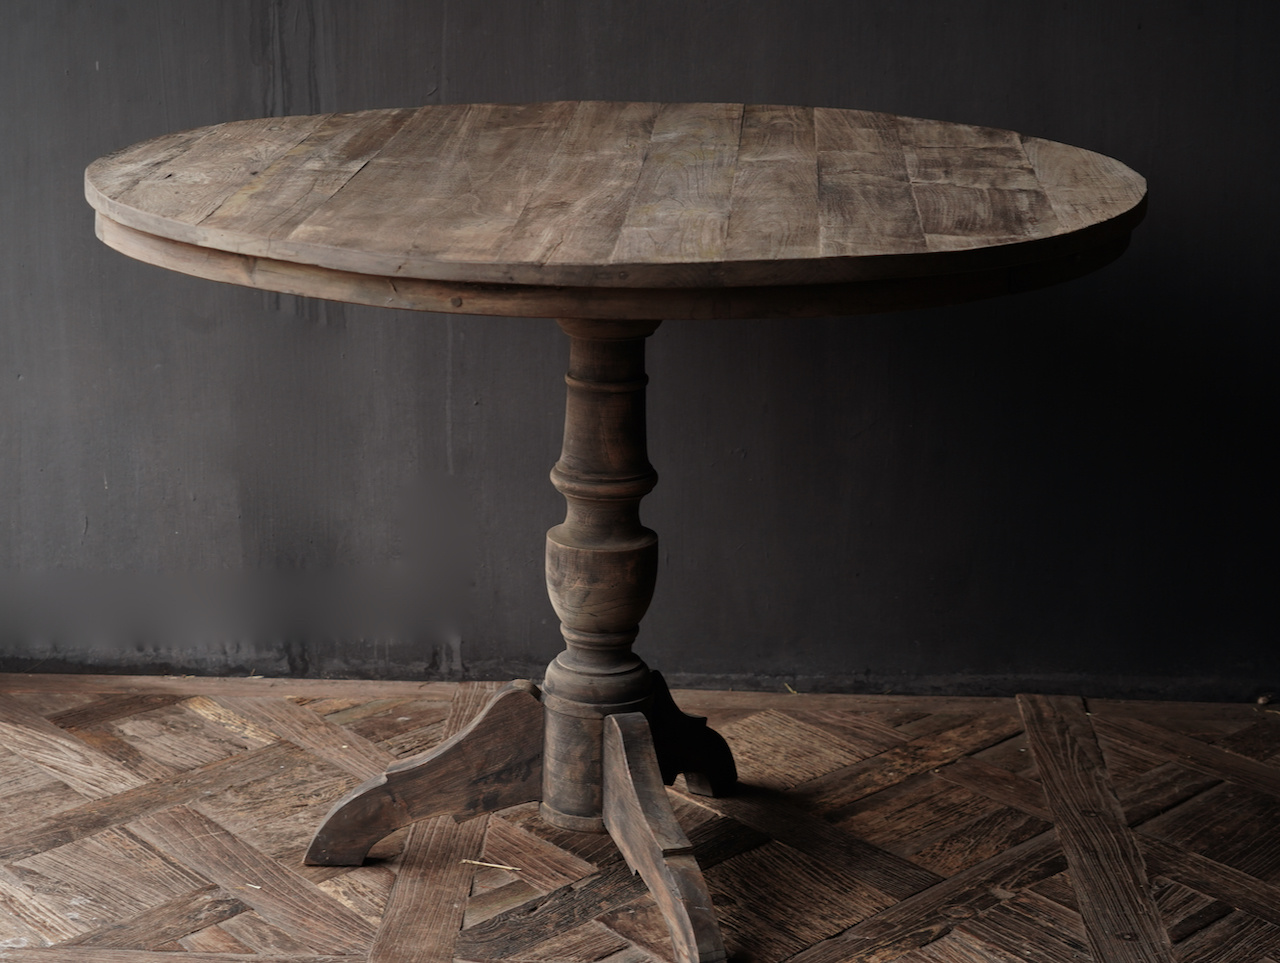 Cool round table made of old used wood - Copy-2